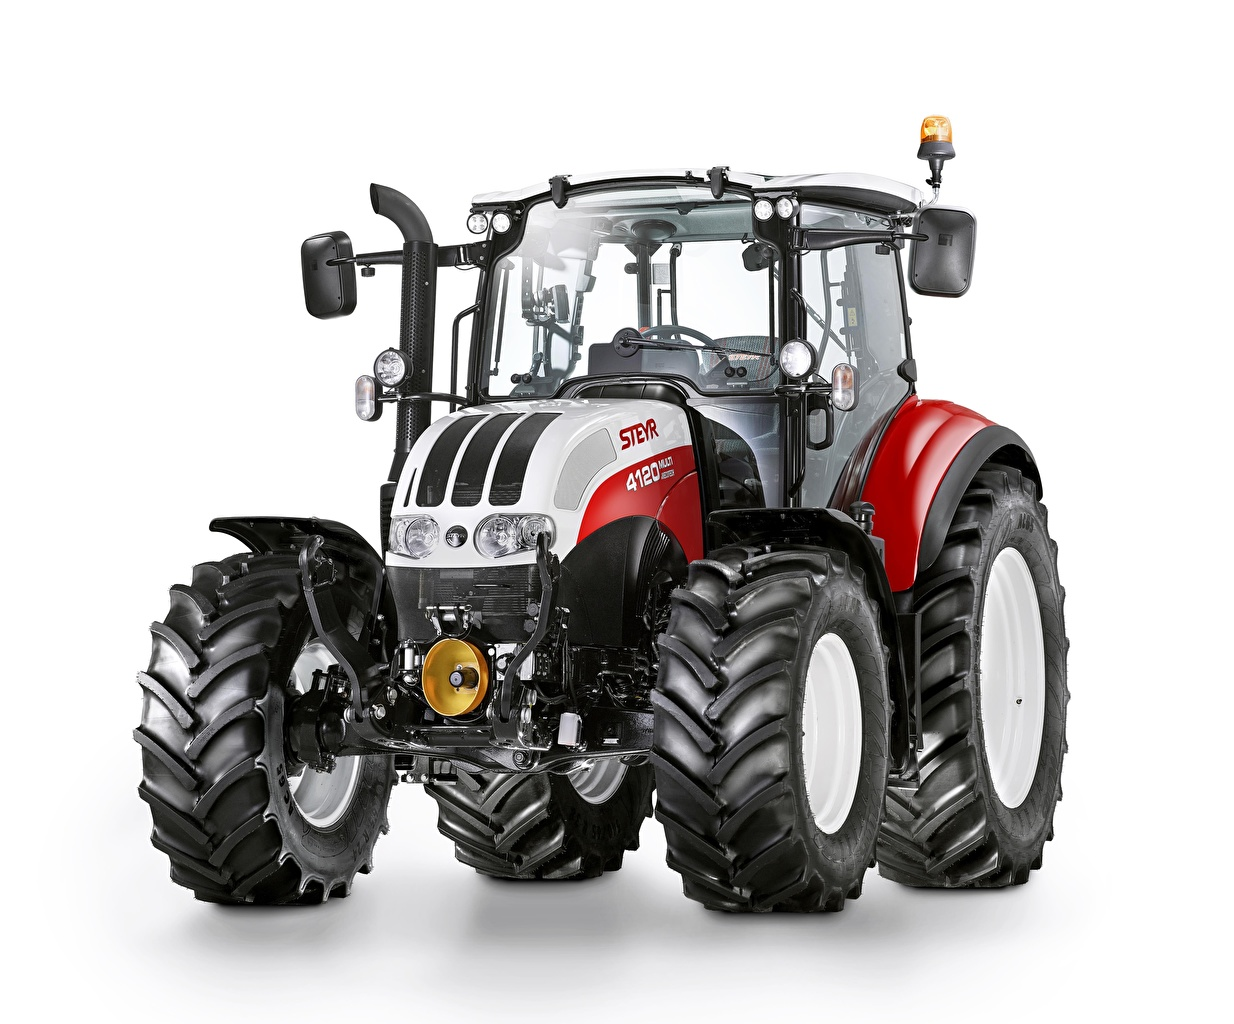 Images Tractor Steyr 4120 Multi Front White background tractors